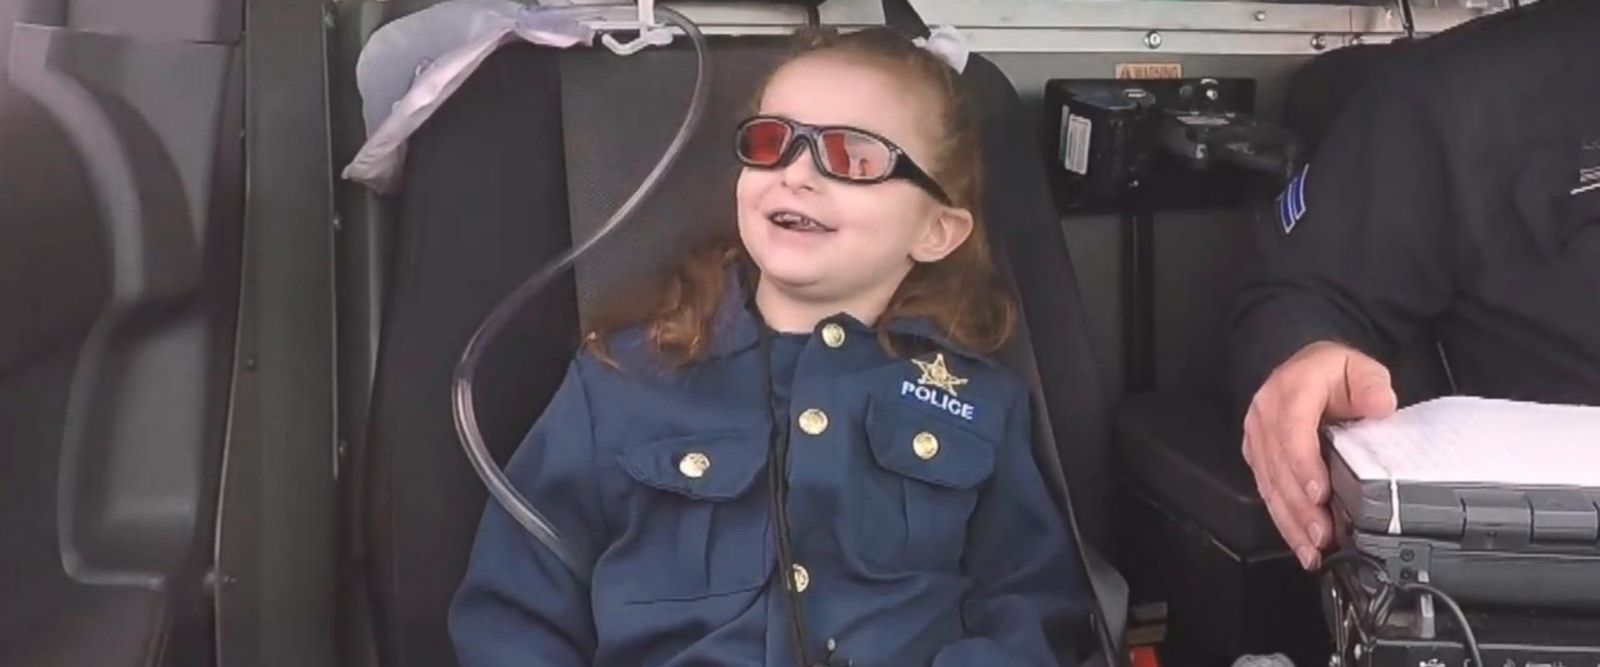 VIDEO: Terminally ill 6-year-old fulfills bucket list item to become police officer